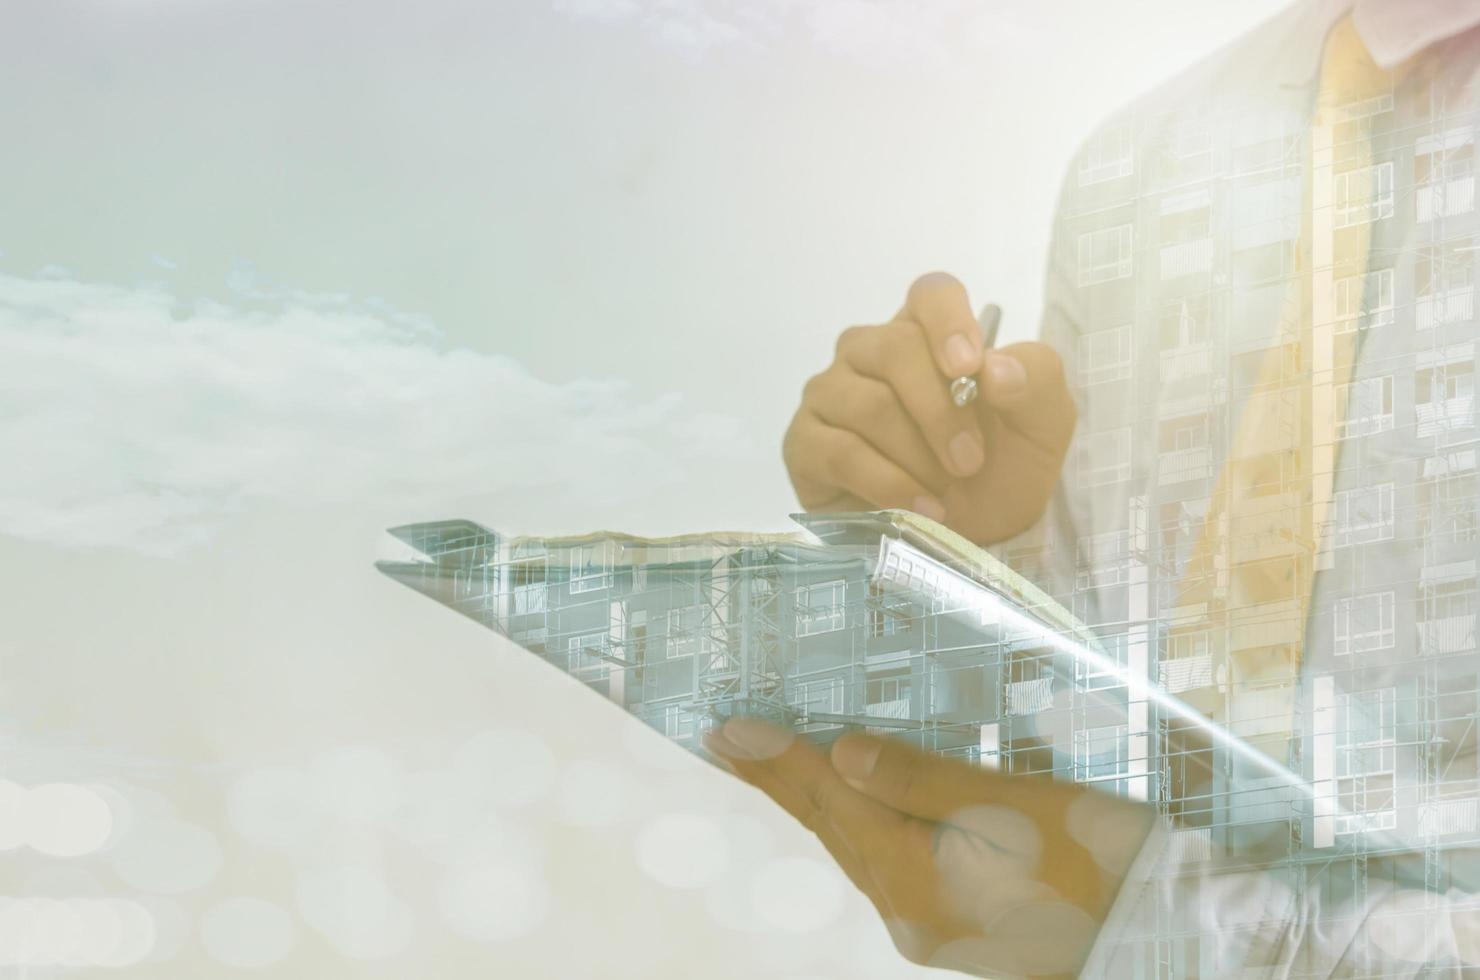 Double exposure of businessman and building photo